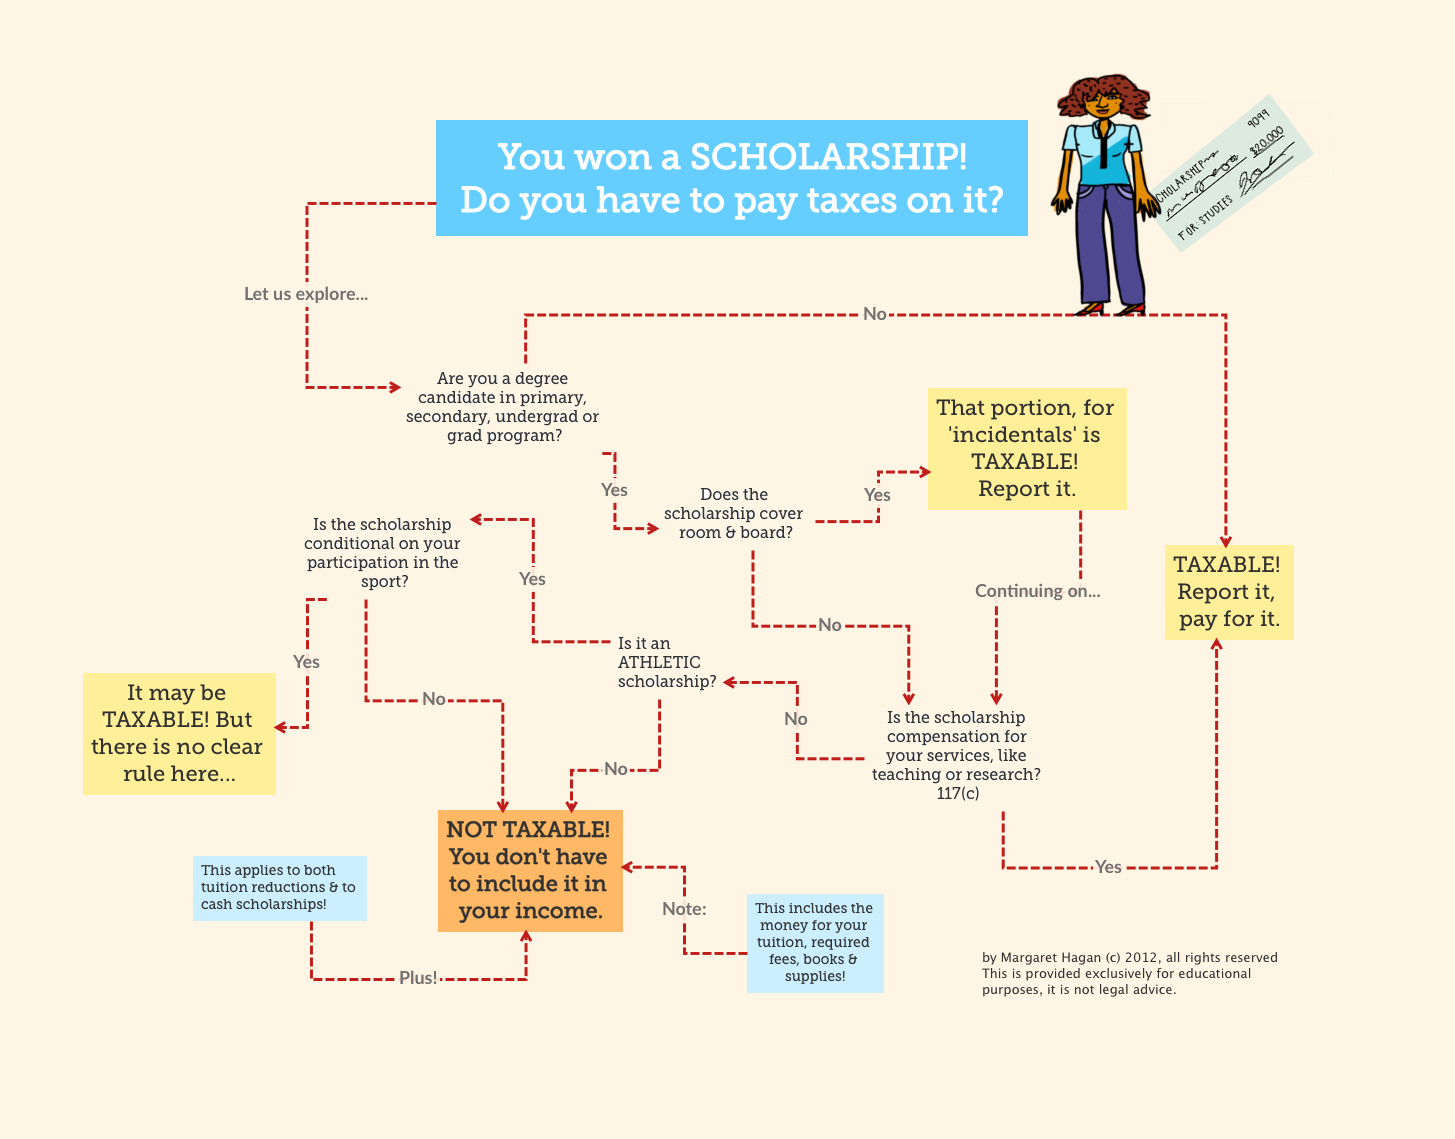 Tax flowchart do i pay taxes on a scholarship visual law library tax law flowchart you won a scholarship do you have to pay taxes on geenschuldenfo Images